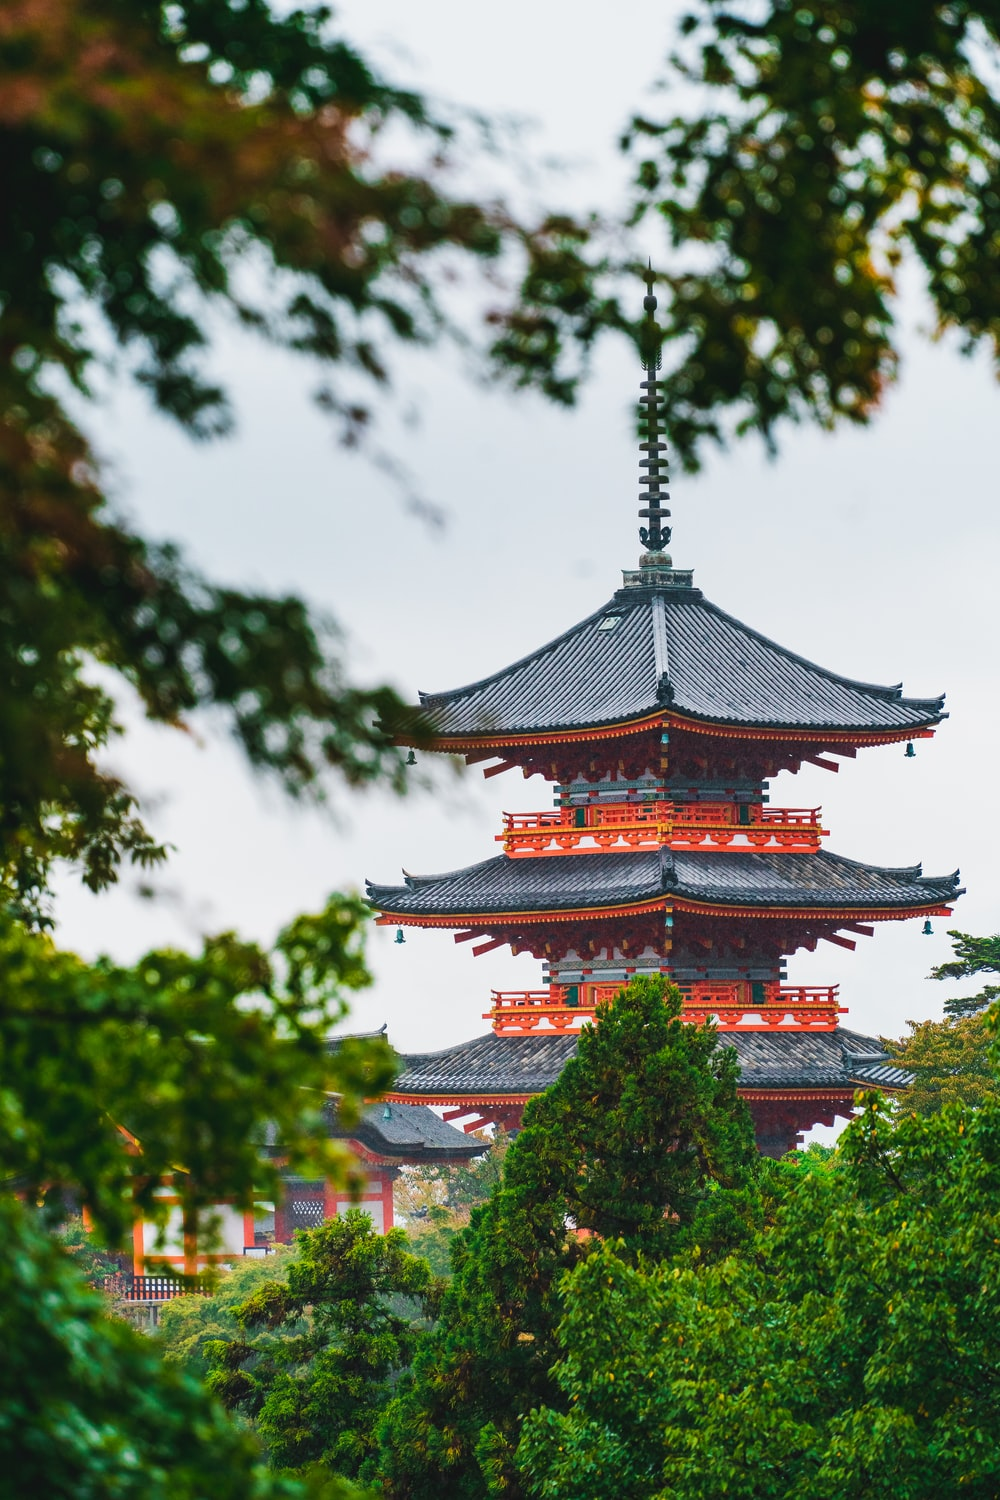 brown and white temple surrounded by green trees during daytime